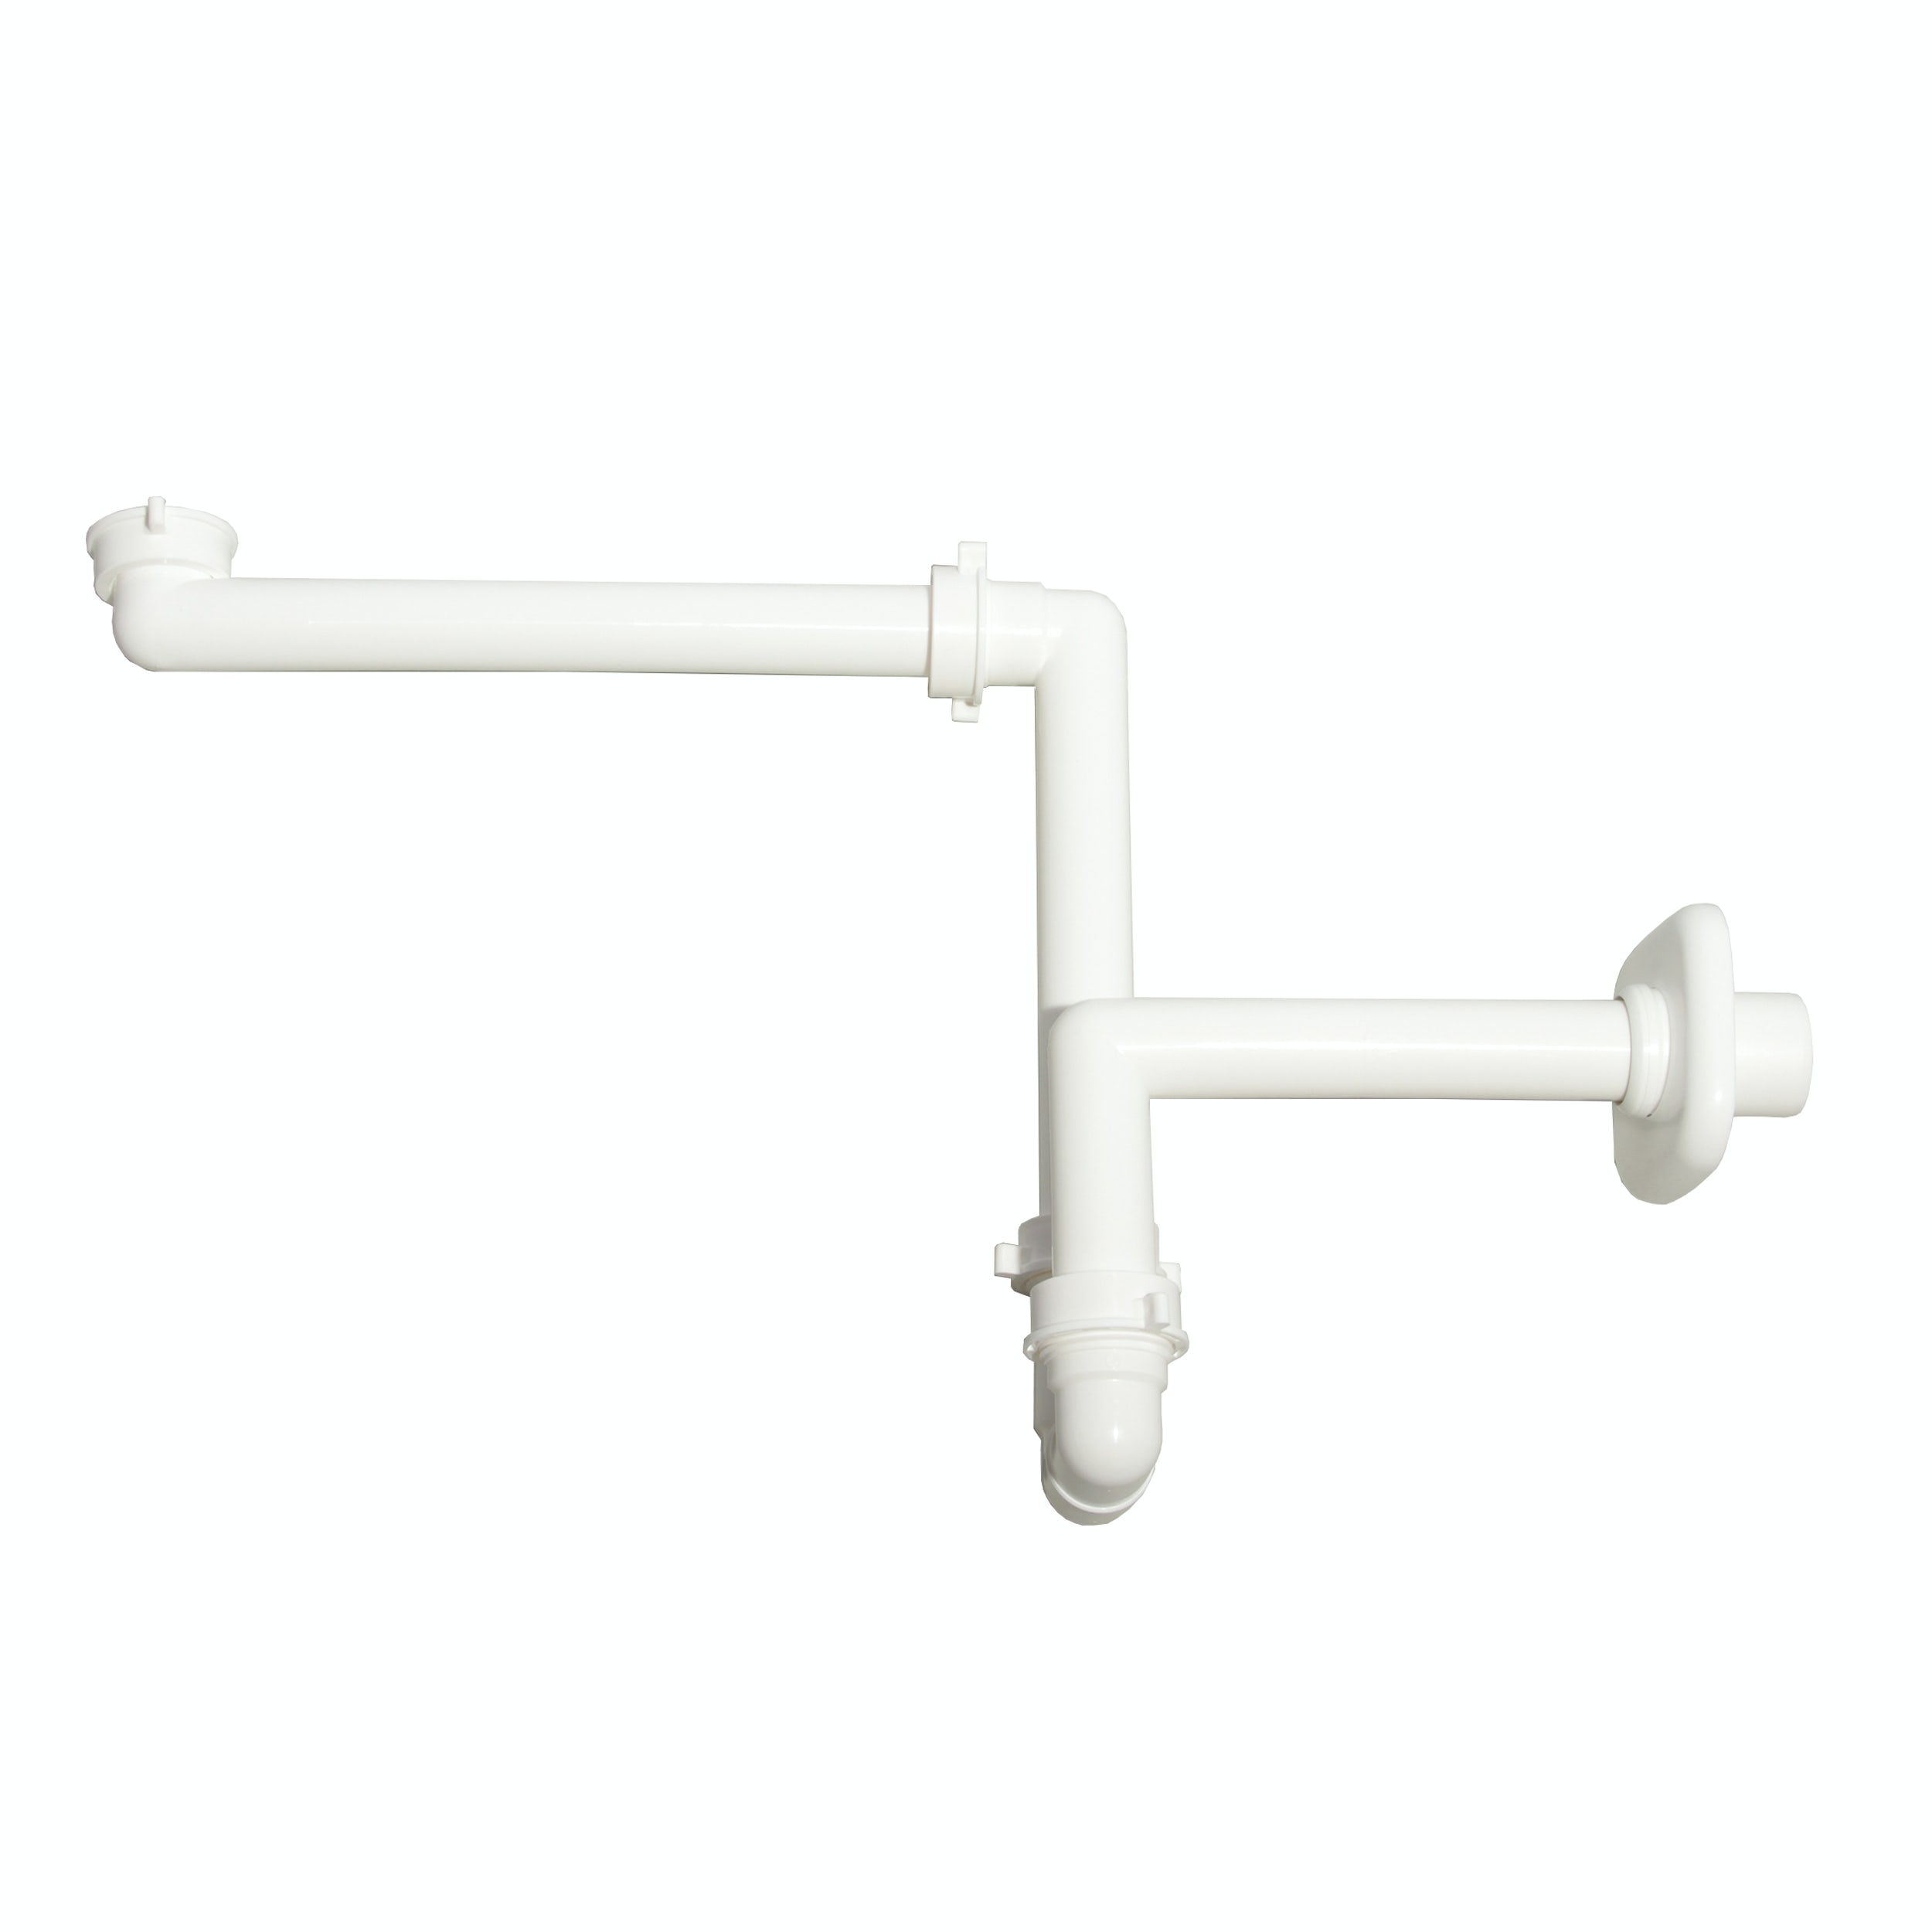 Ideal Standard universal space saving siphon